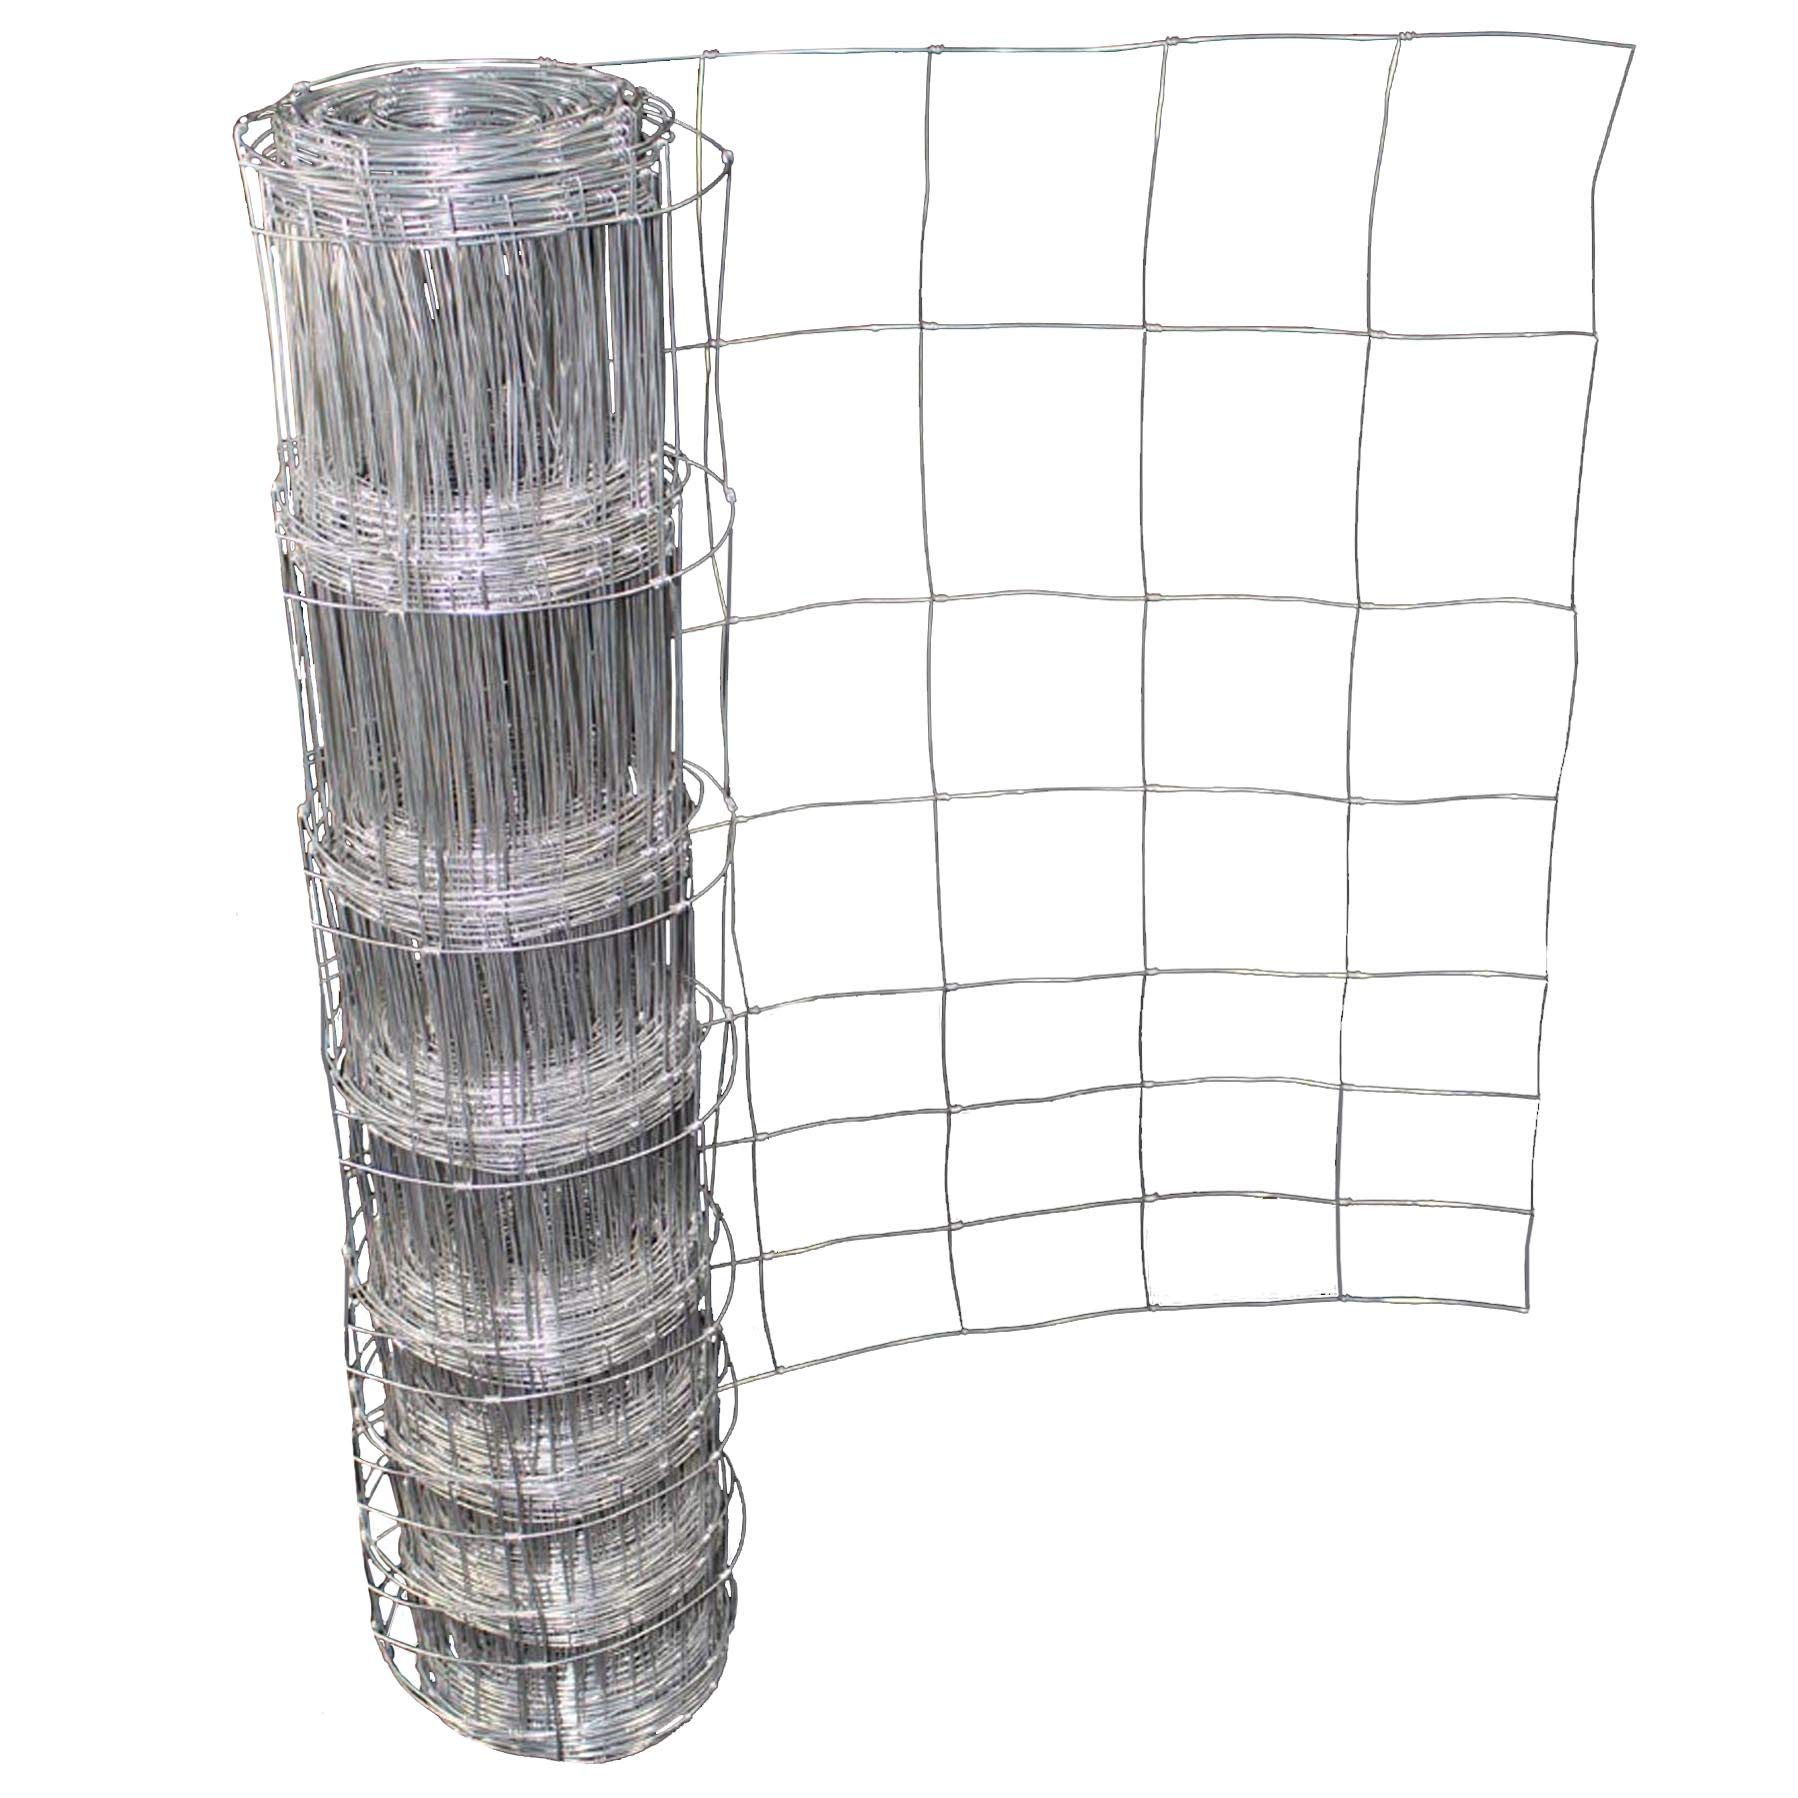 4wire Stock Fencing L8//100//15 1mt high HOT DIP GALVANISE